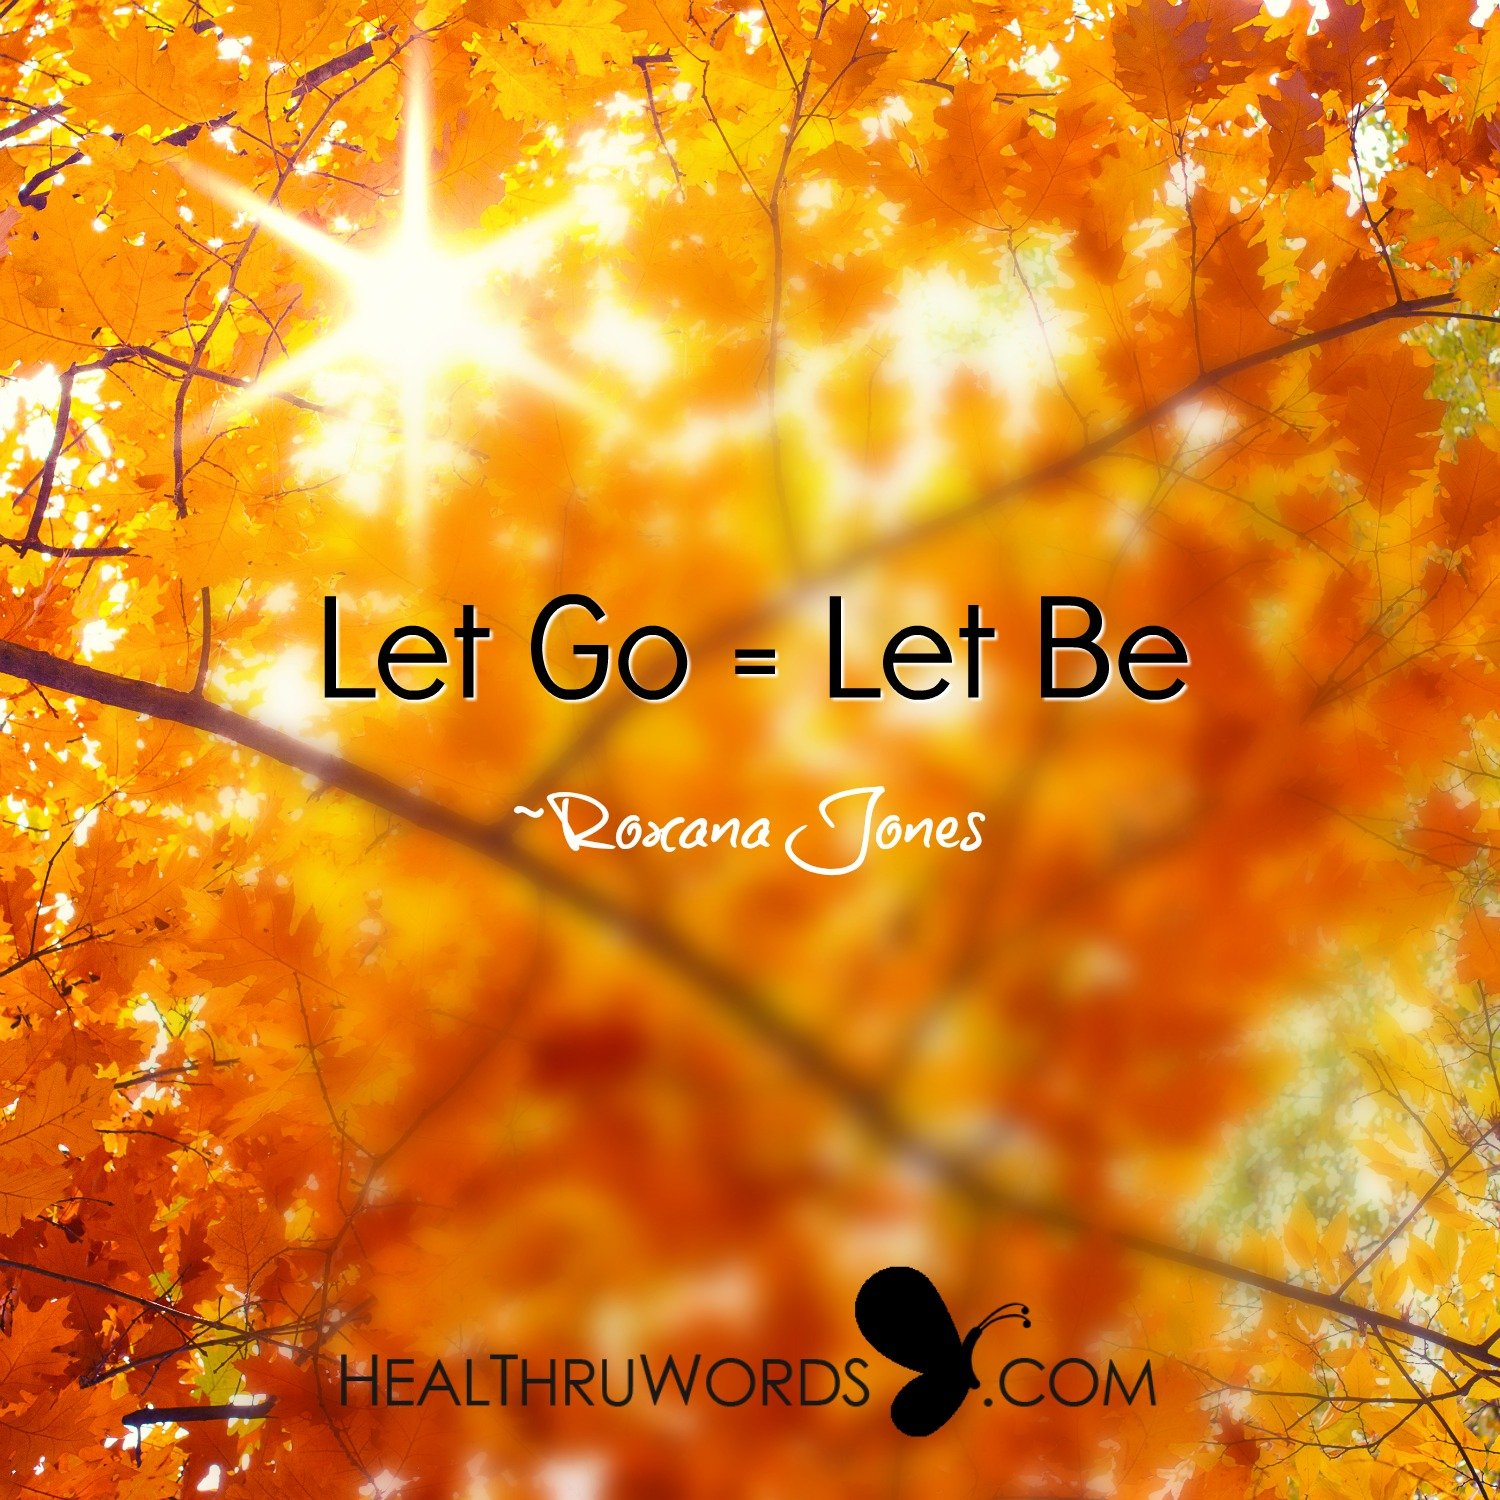 Inspirational Image: Let It Be